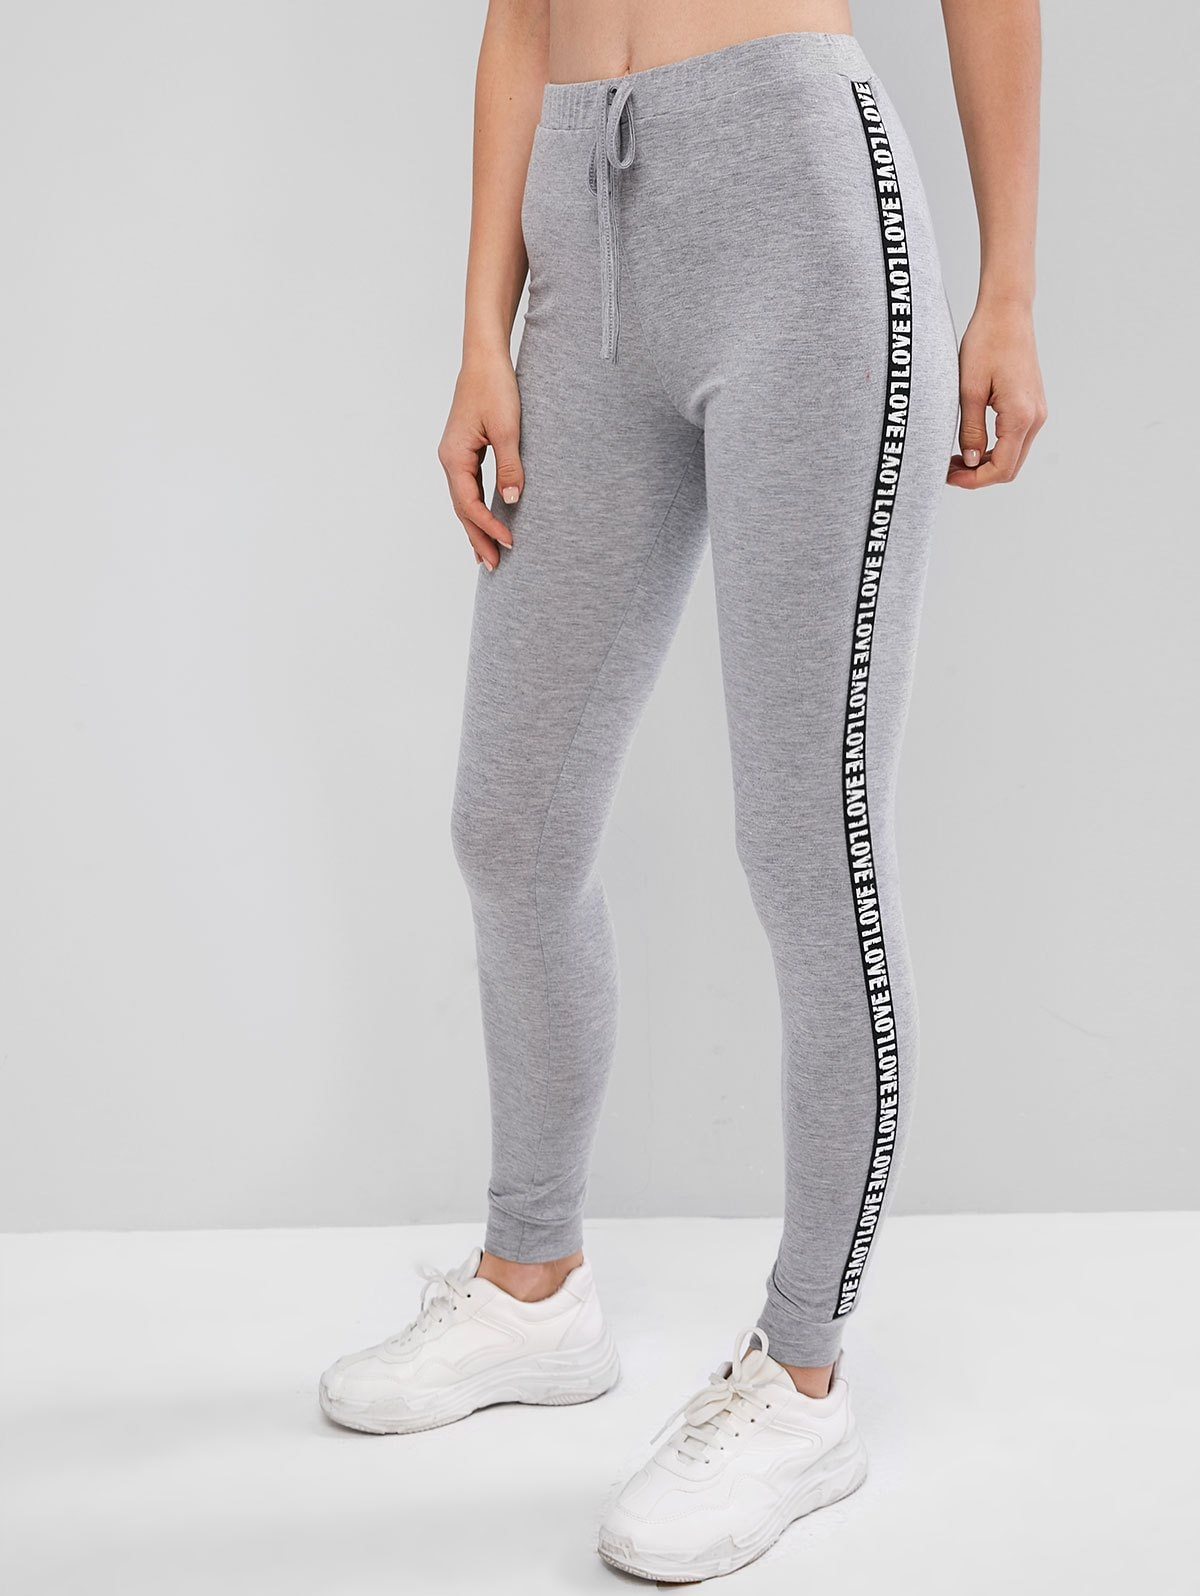 Letter Patched Heathered High Waist Leggings